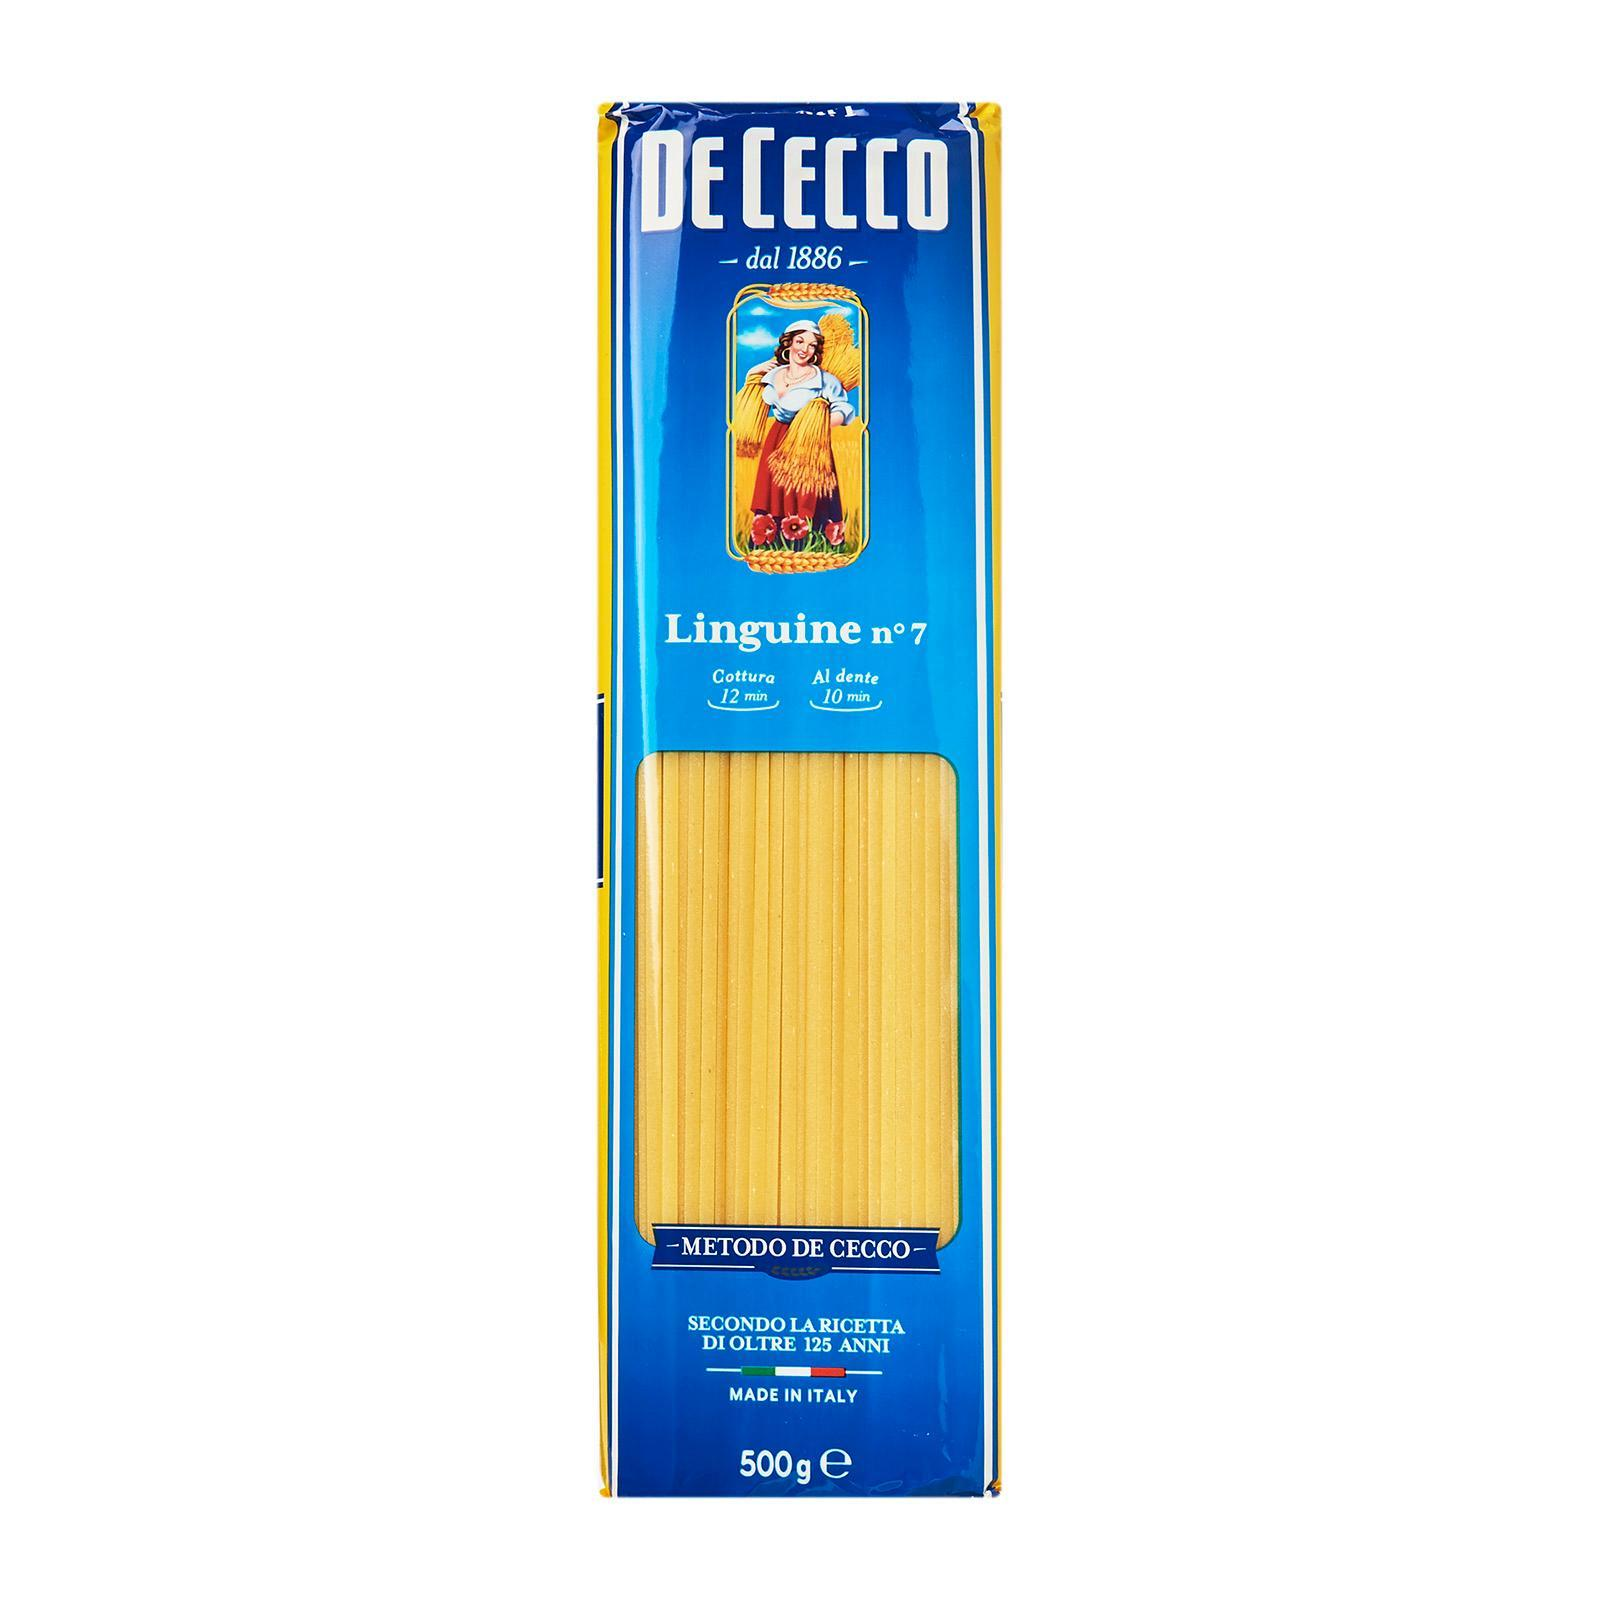 De Cecco Linguine By Redmart.